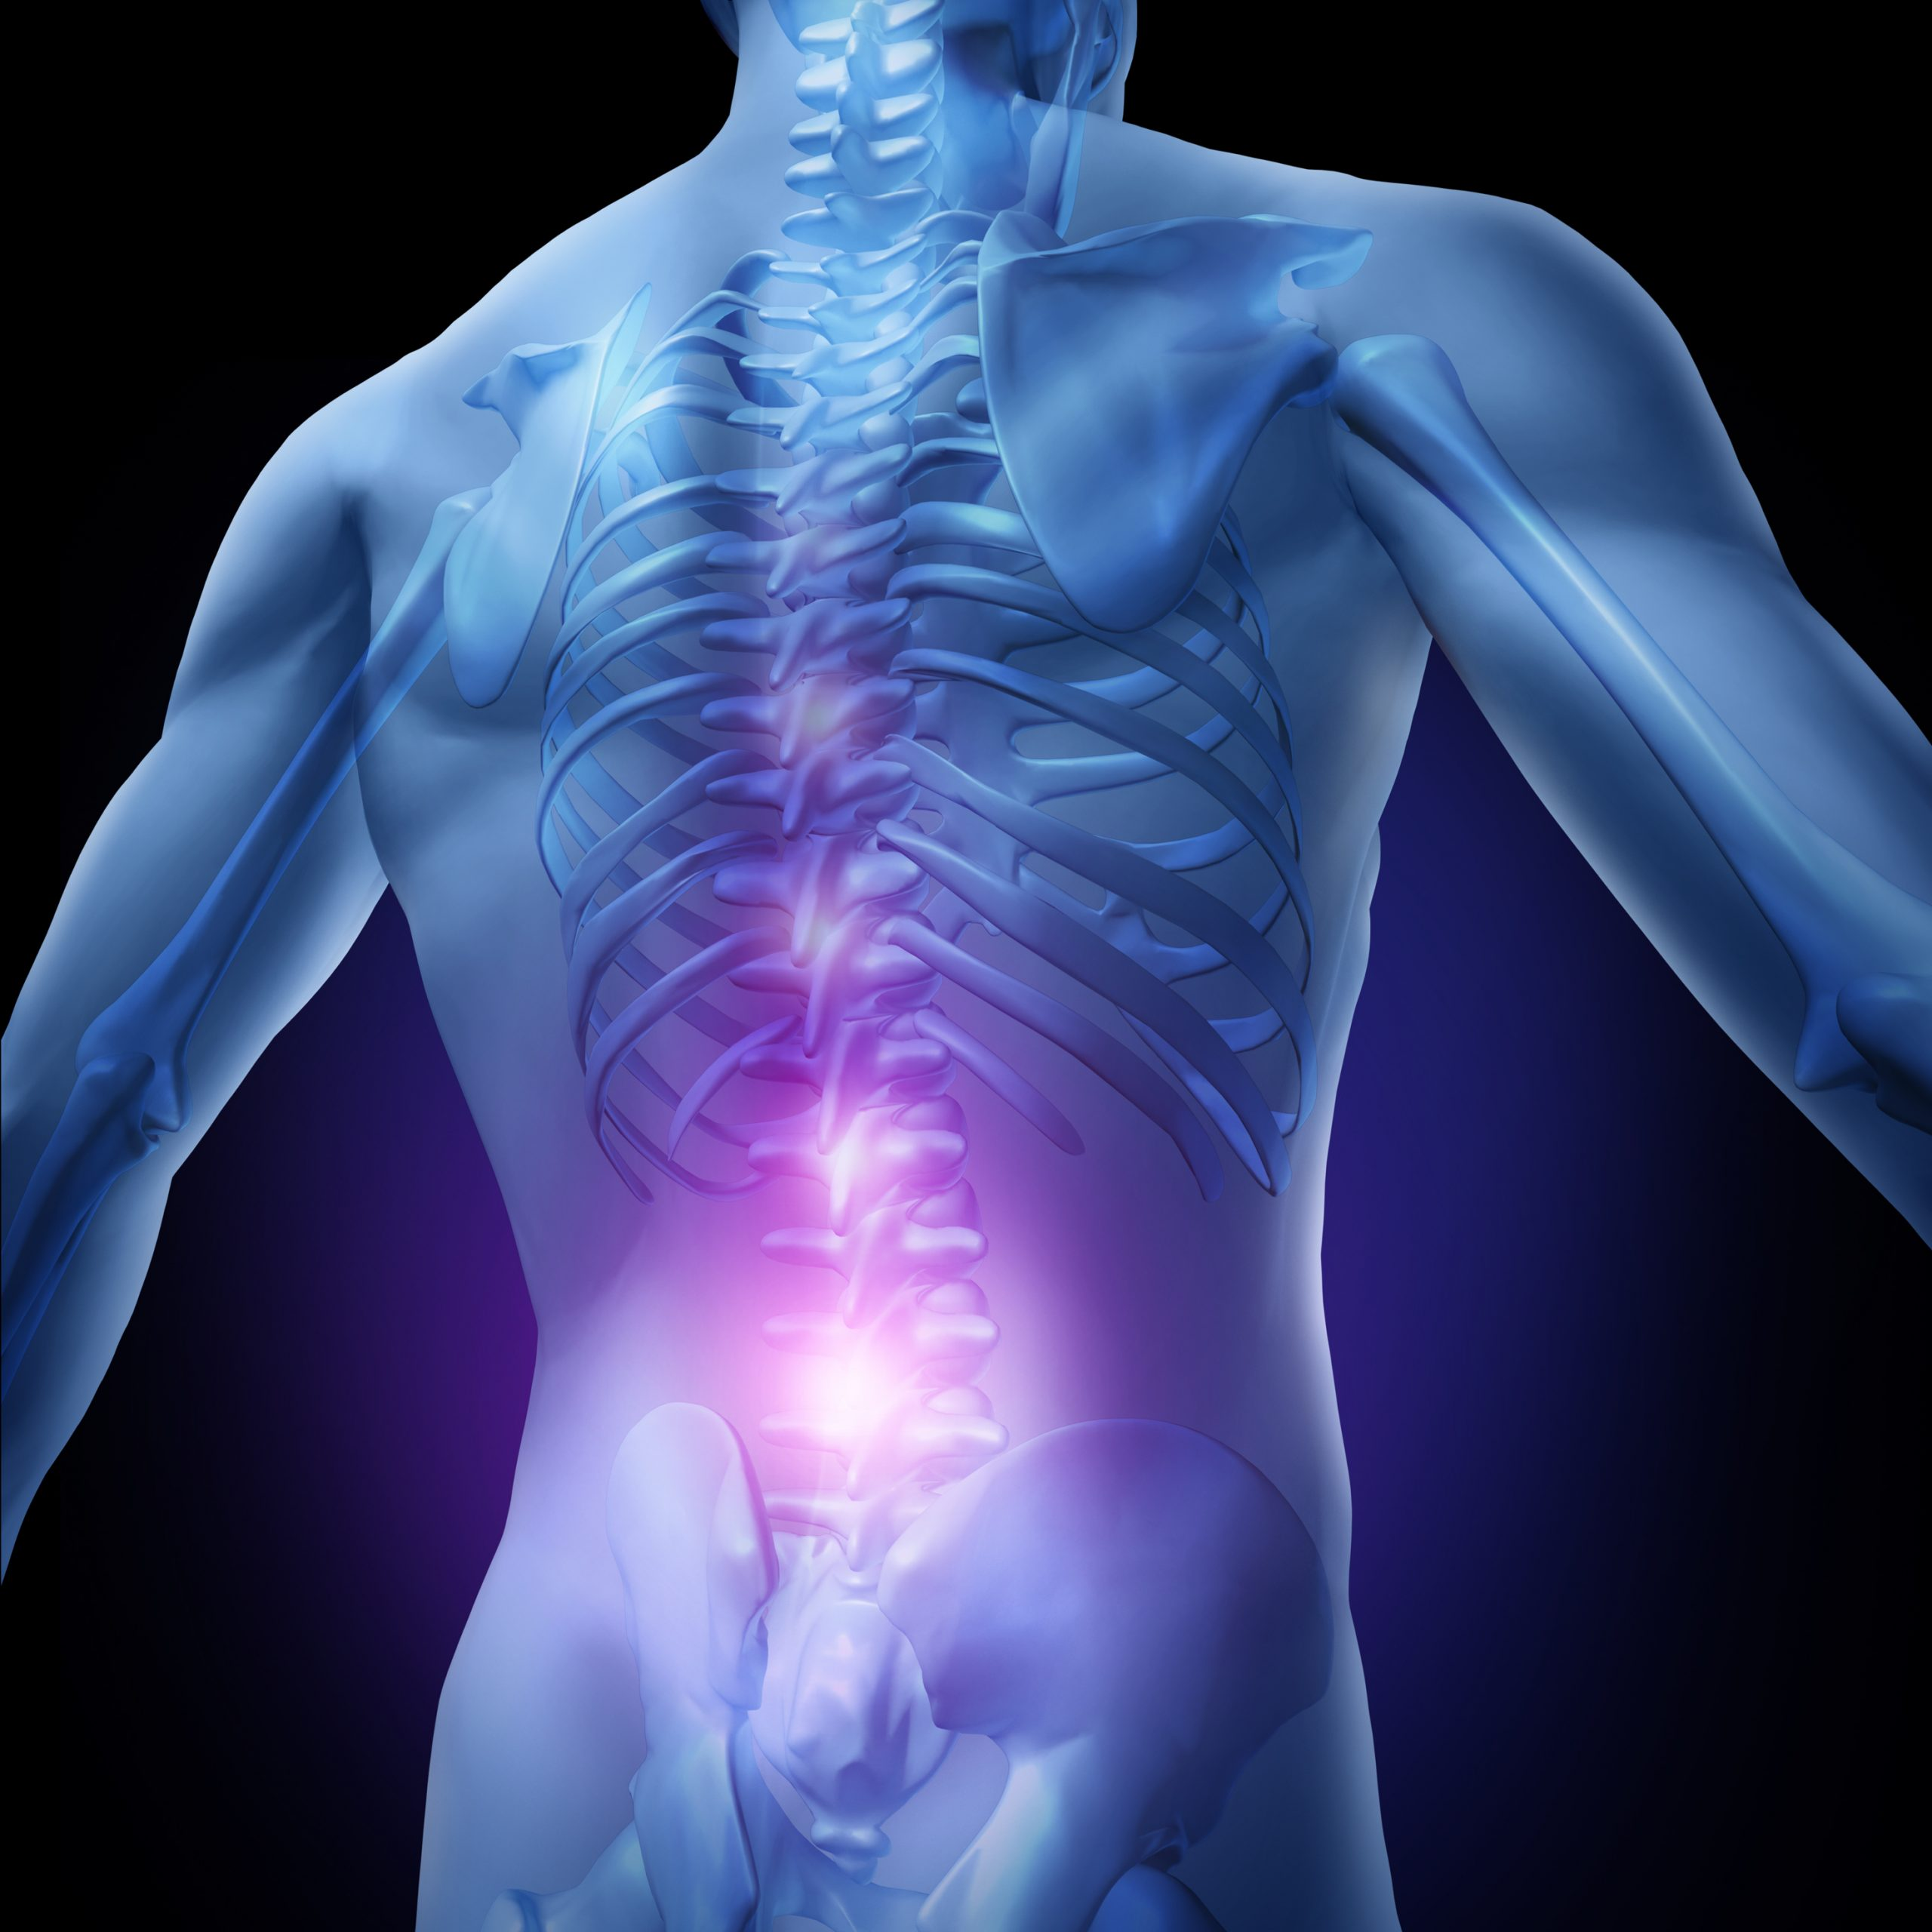 Low back pain with associated structures